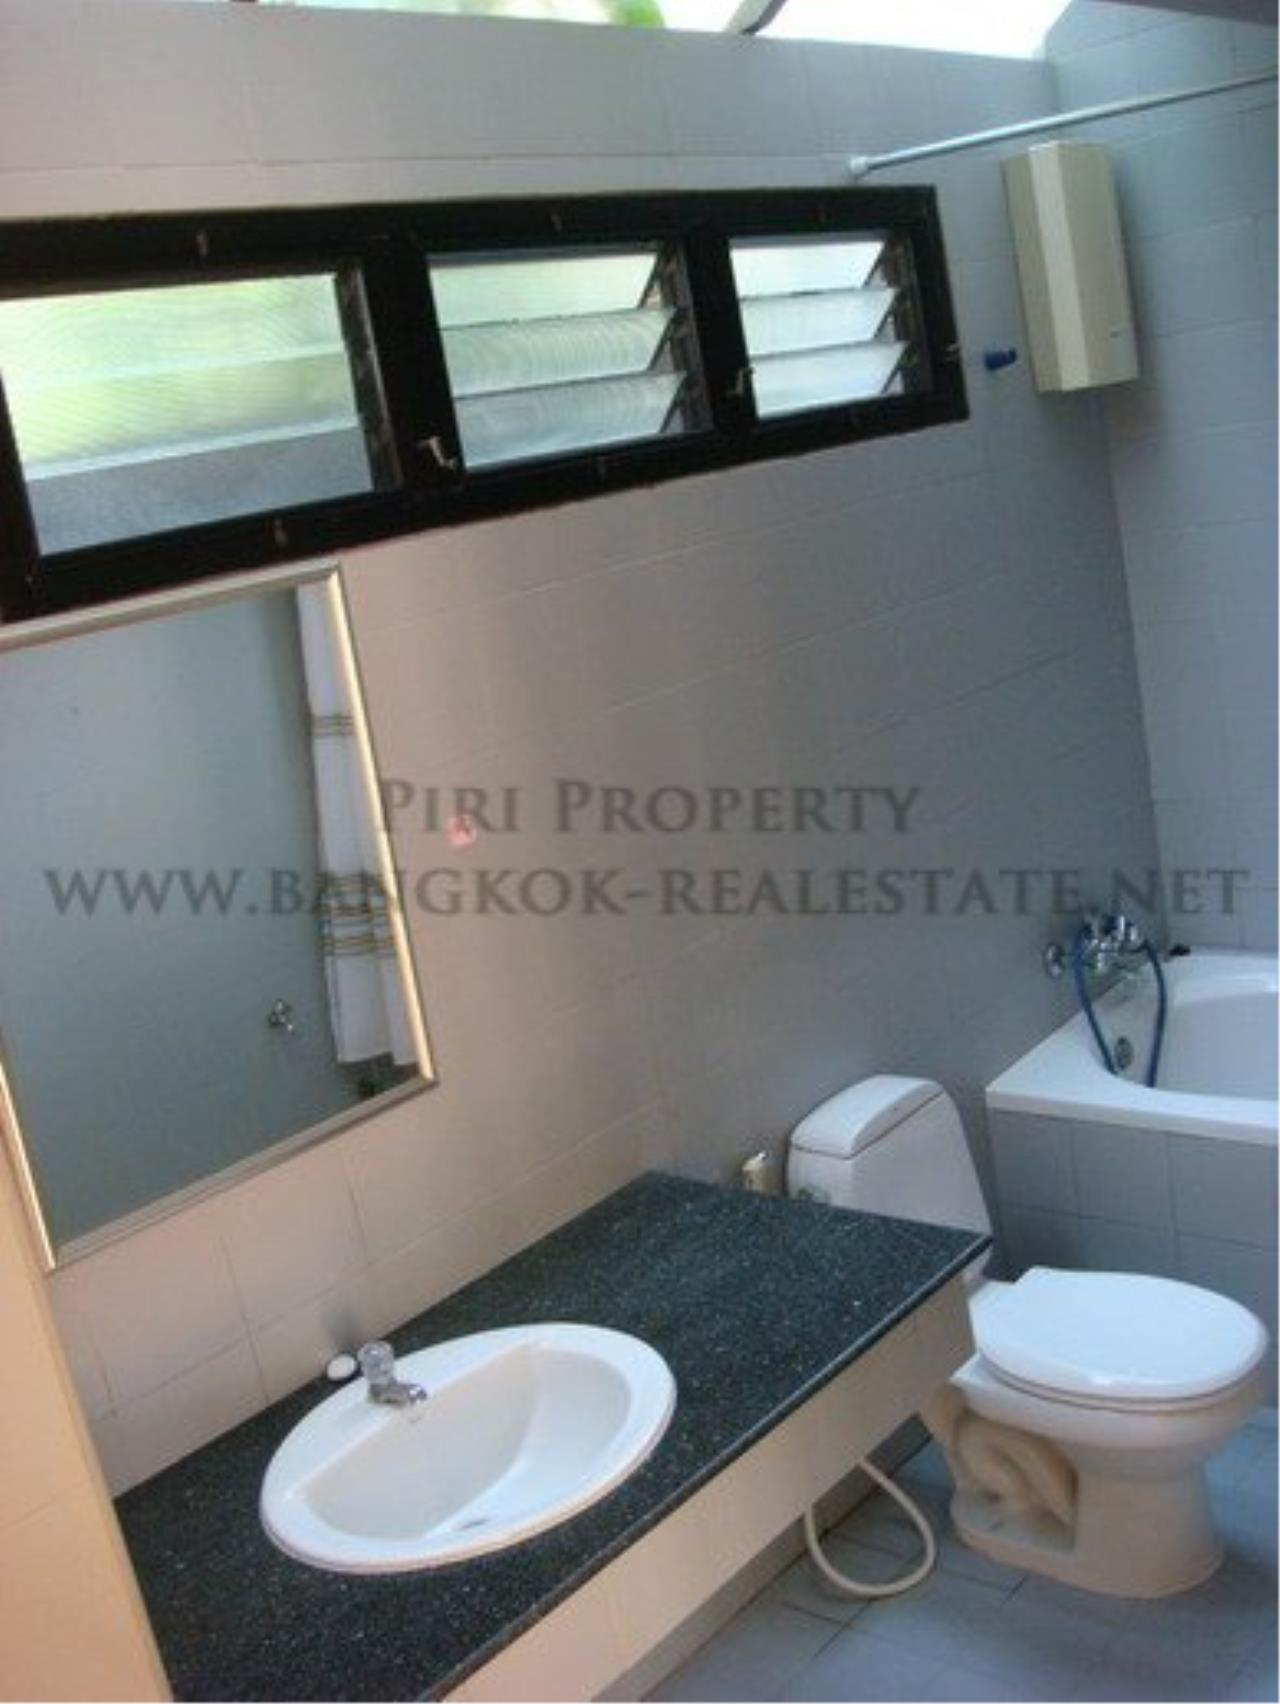 Piri Property Agency's Cheap Apartment in the heart of Asoke - 1 Bedroom - Very Spacious 5